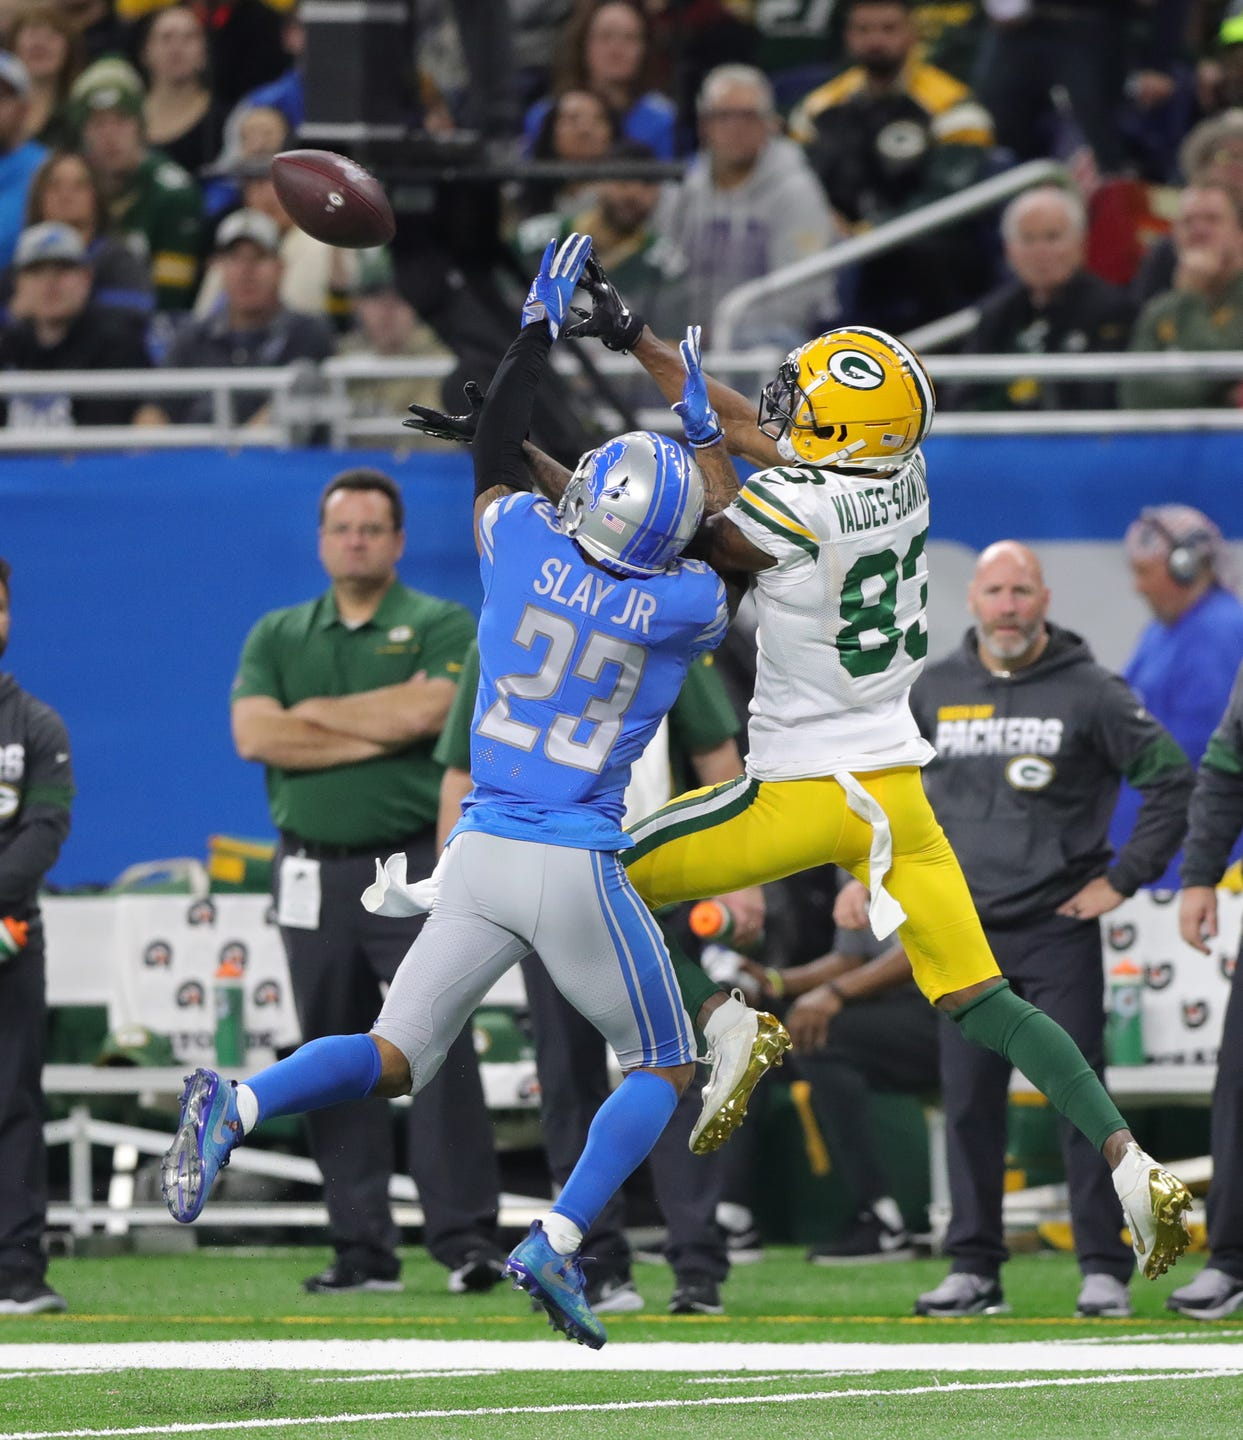 Detroit Lions cornerback Darius Slay defends Green Bay Packers receiver Marquez Valdes-Scantling during the second half Sunday, Dec. 29, 2019 at Ford Field.